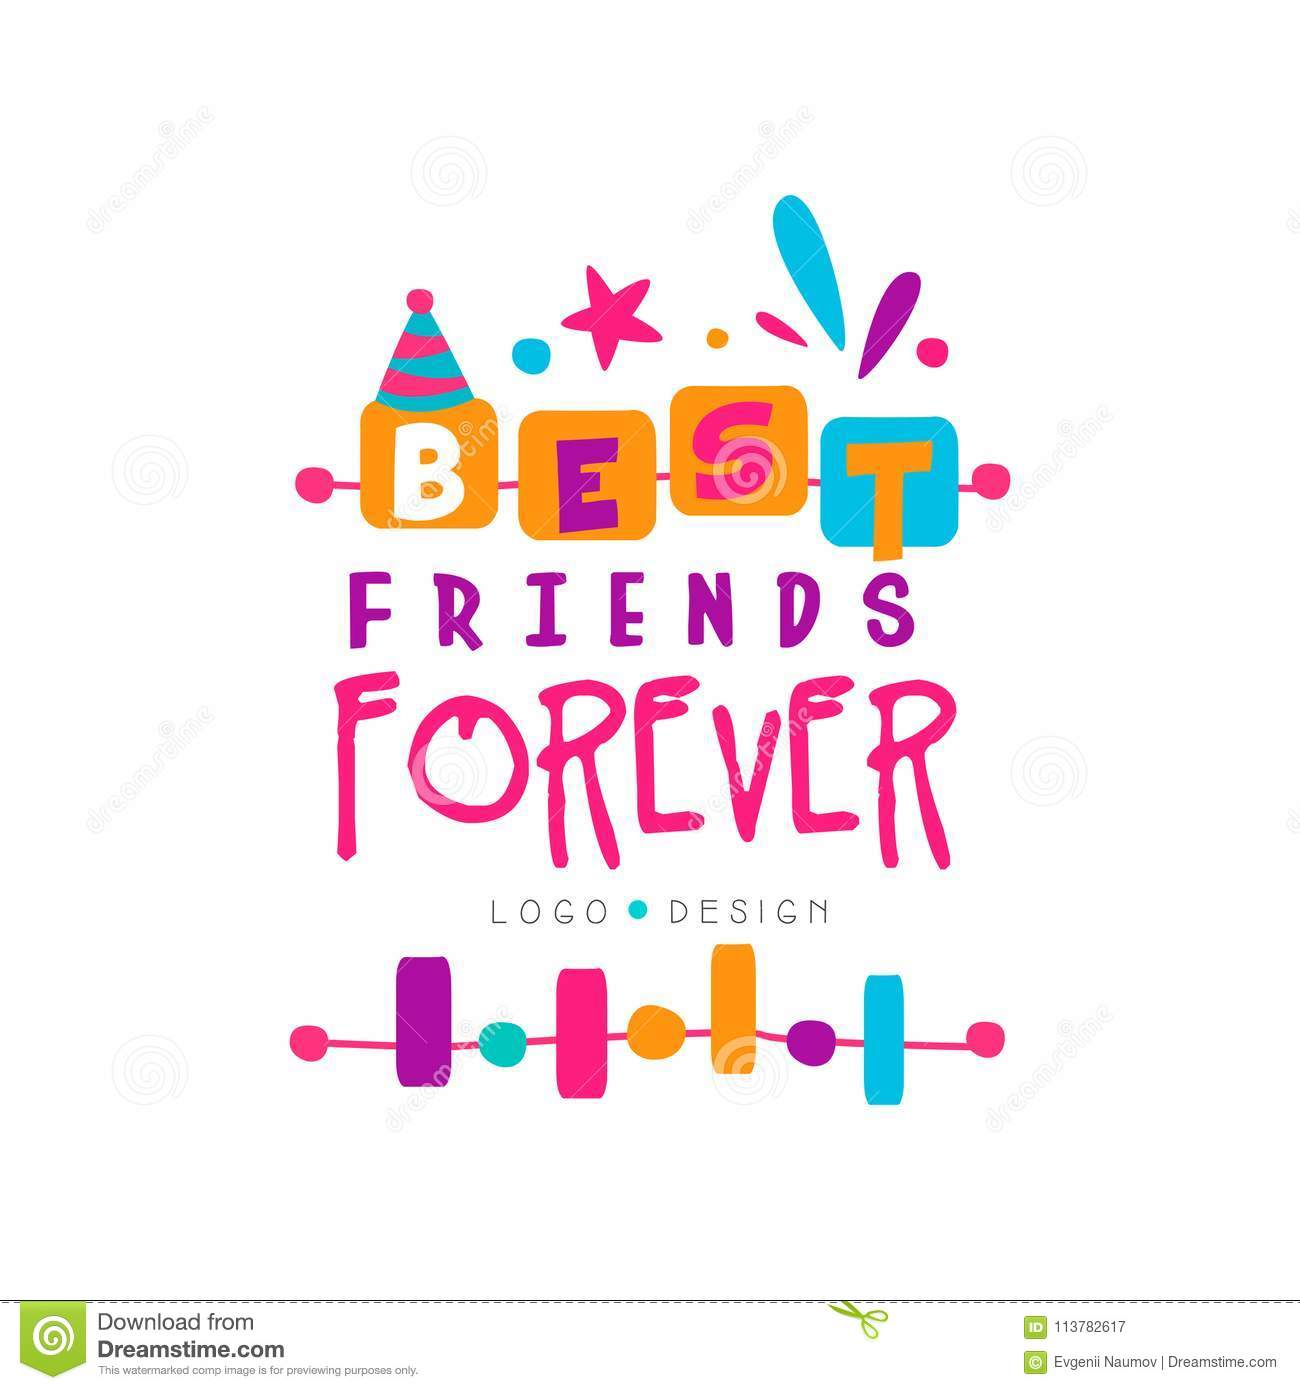 Best friend forever logo template with lettering. Friendship theme. Vector design for invitation, postcard, print or